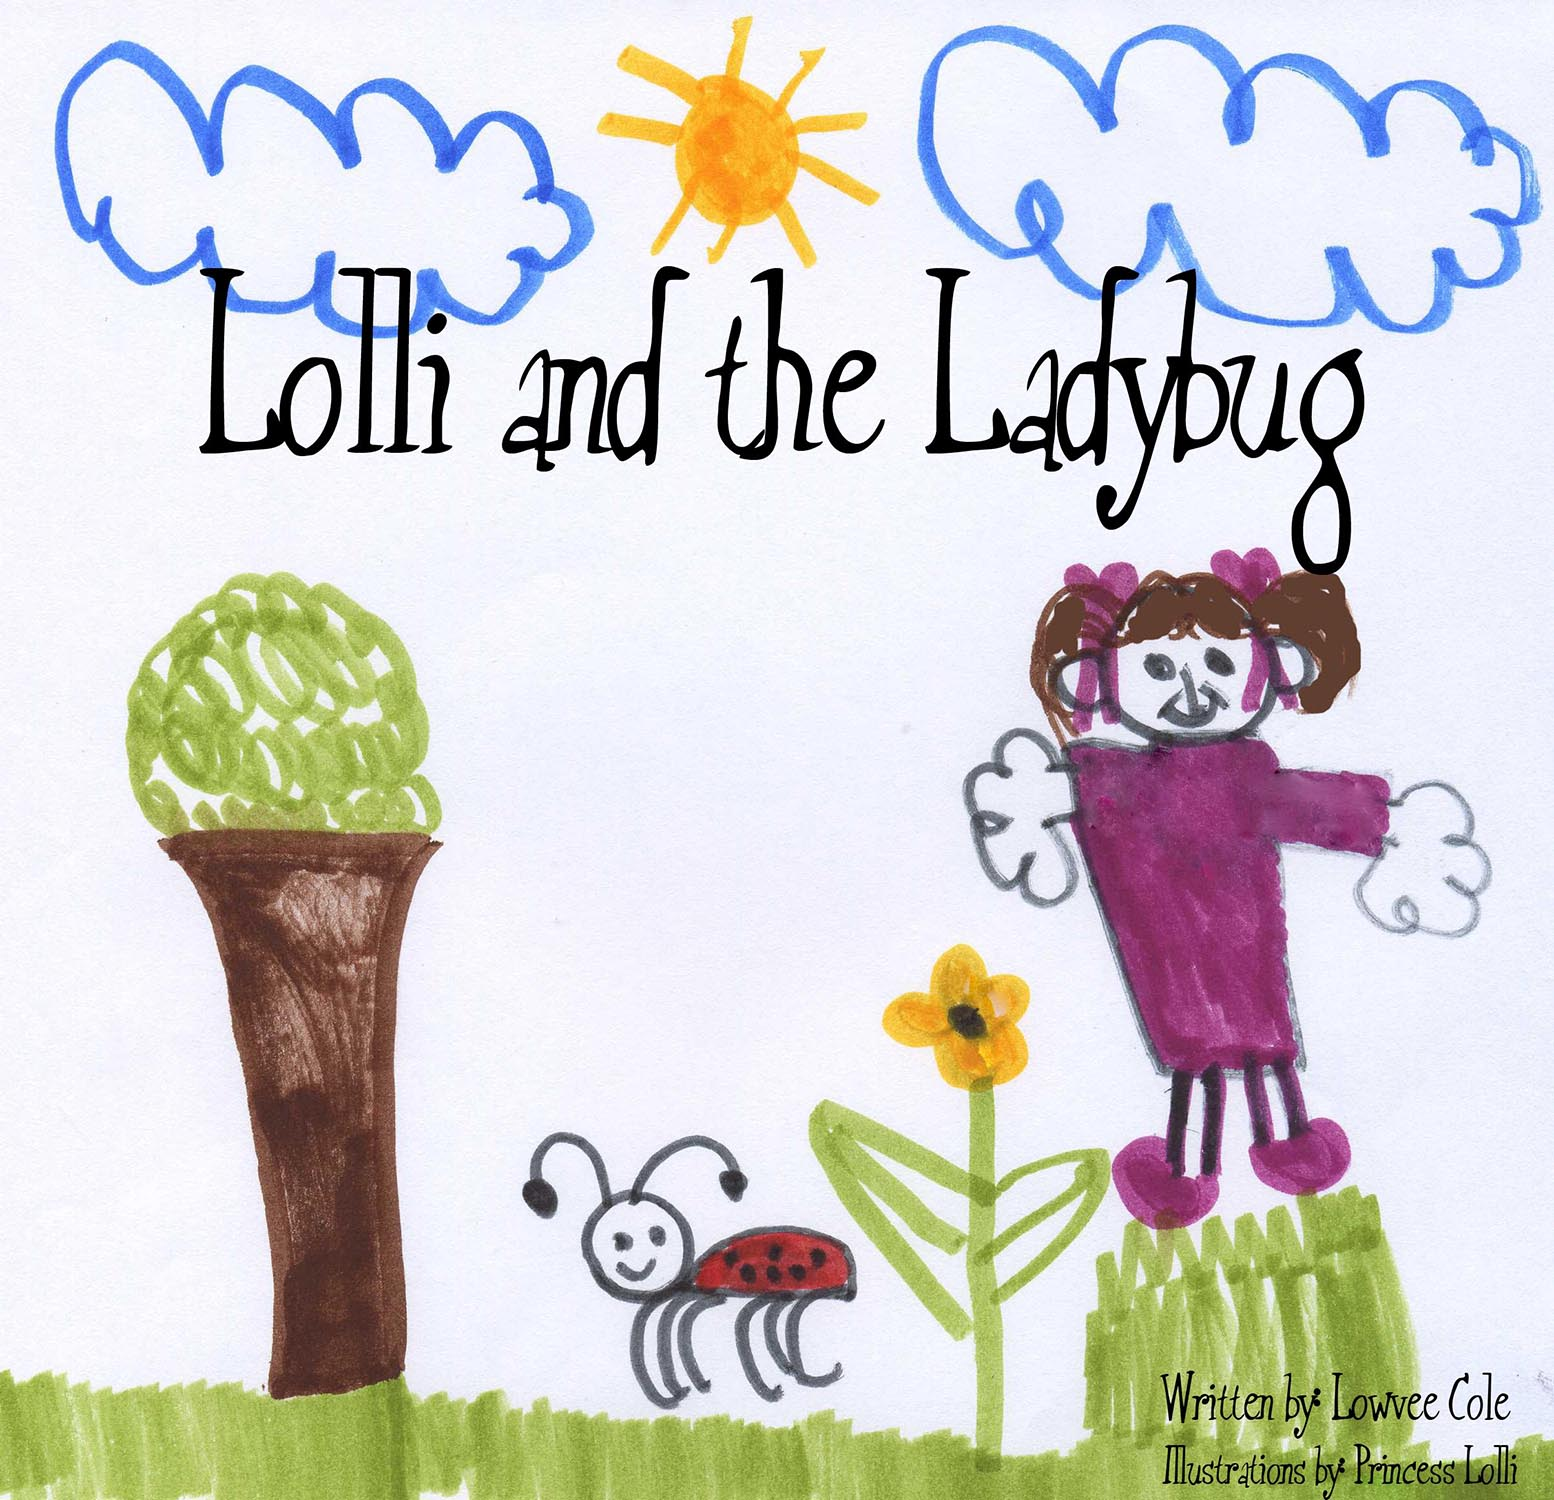 Lolli and the Ladybug - A young girl named Lolli meets an adorable little ladybug friend who teaches her that living life to the happiest and fullest means traveling OUTSIDE the glass jar.*Recommended for girls ages 3-6*